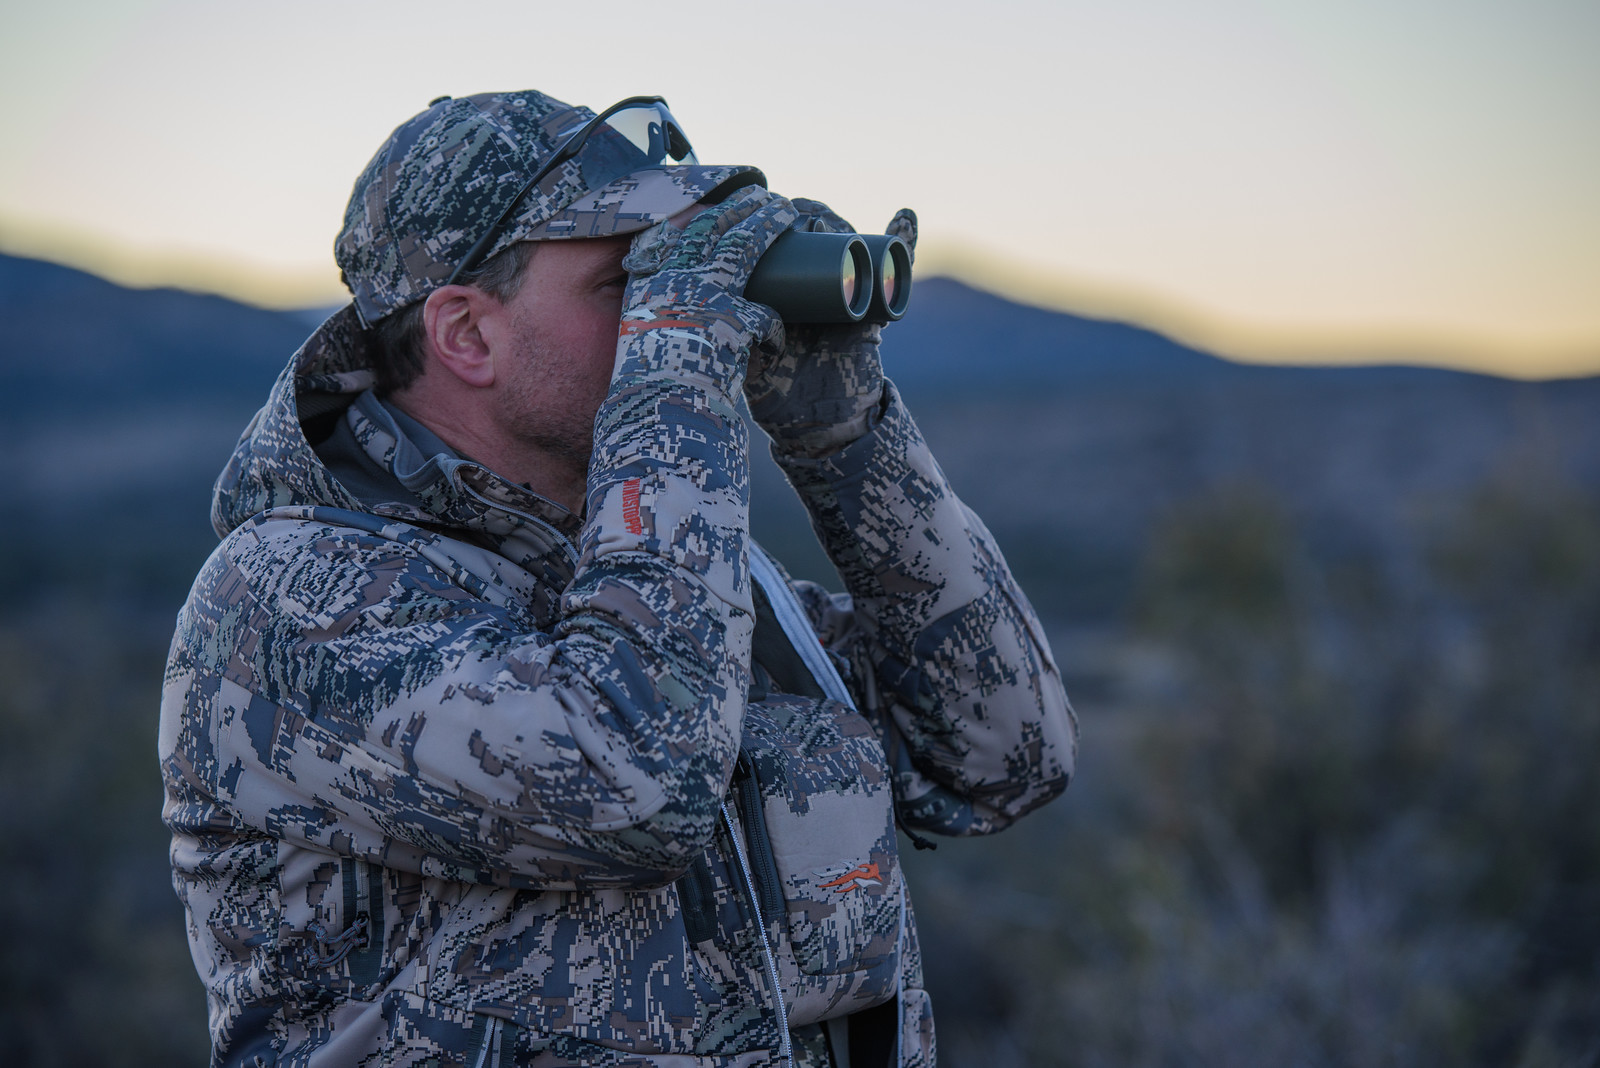 sitka gear turning clothing into gear